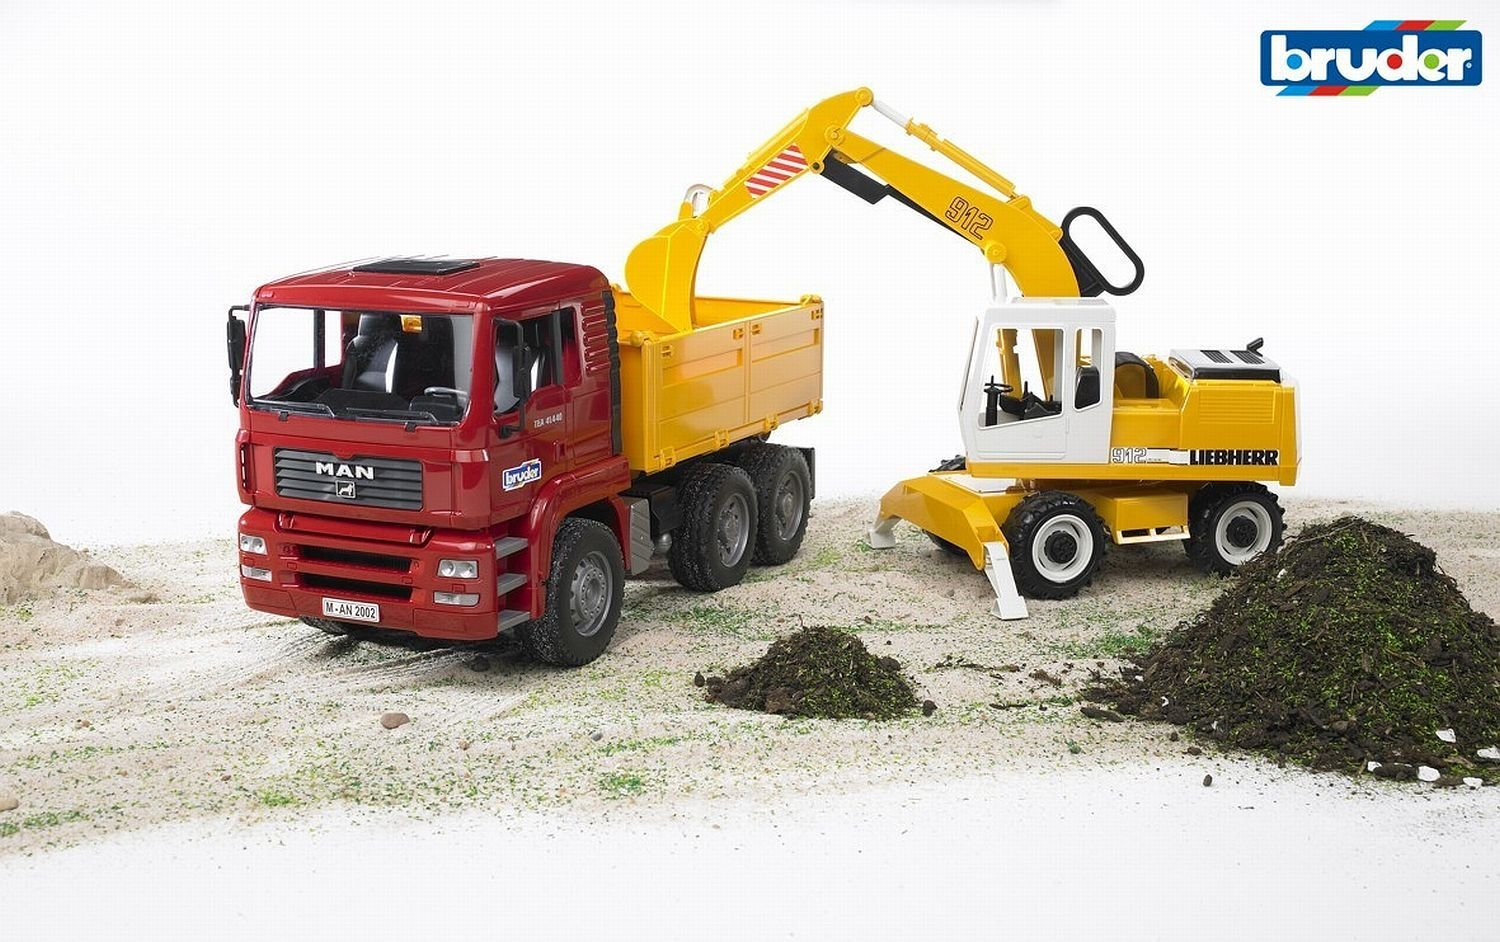 BRUDER - MAN TGA Construction truck with Liebherr Excavator- 2751